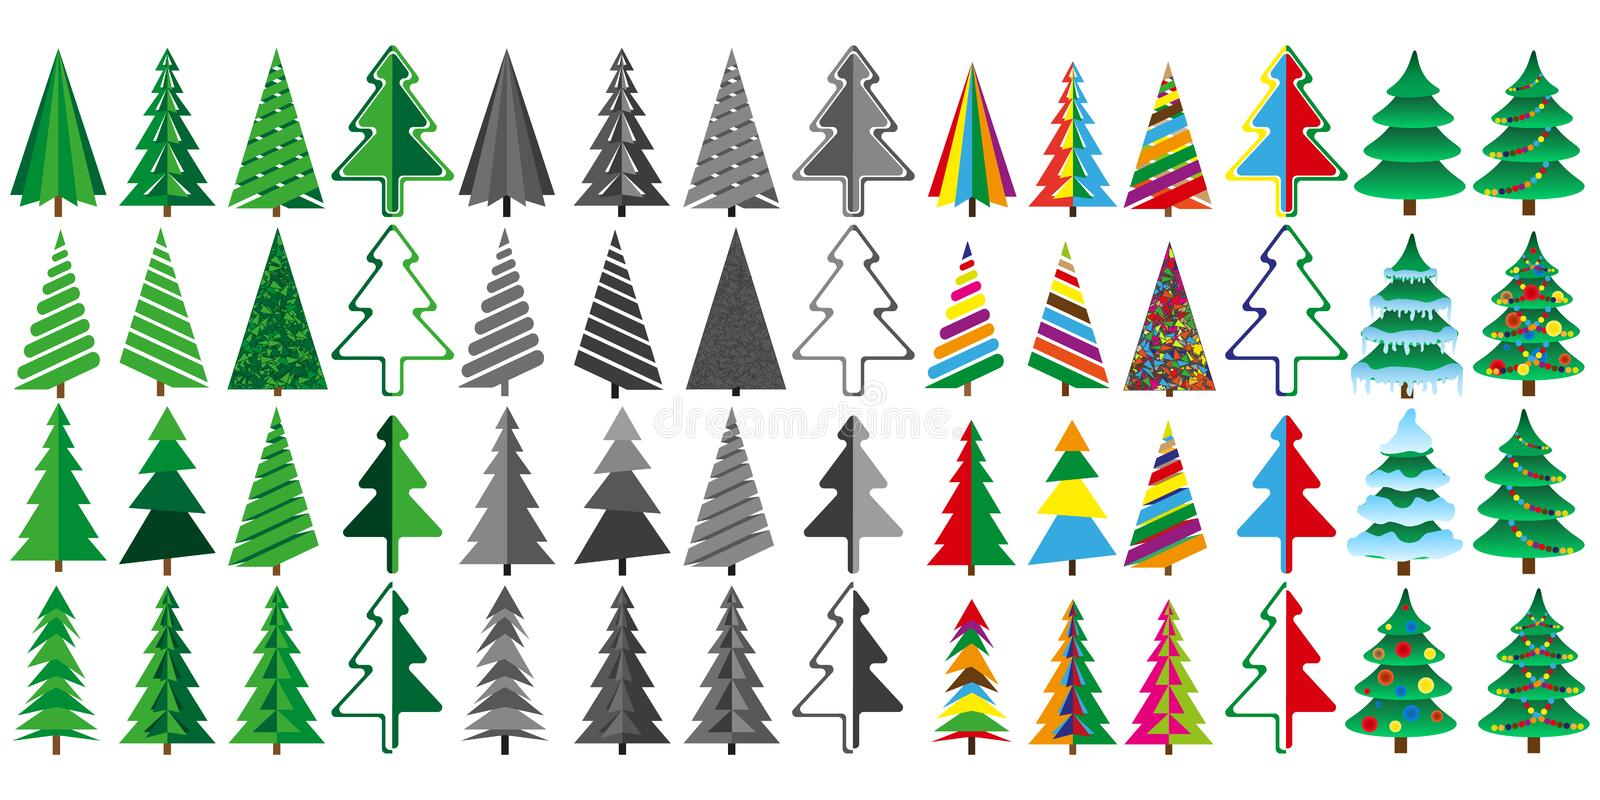 Large set of Christmas trees in color and gray. royalty free illustration